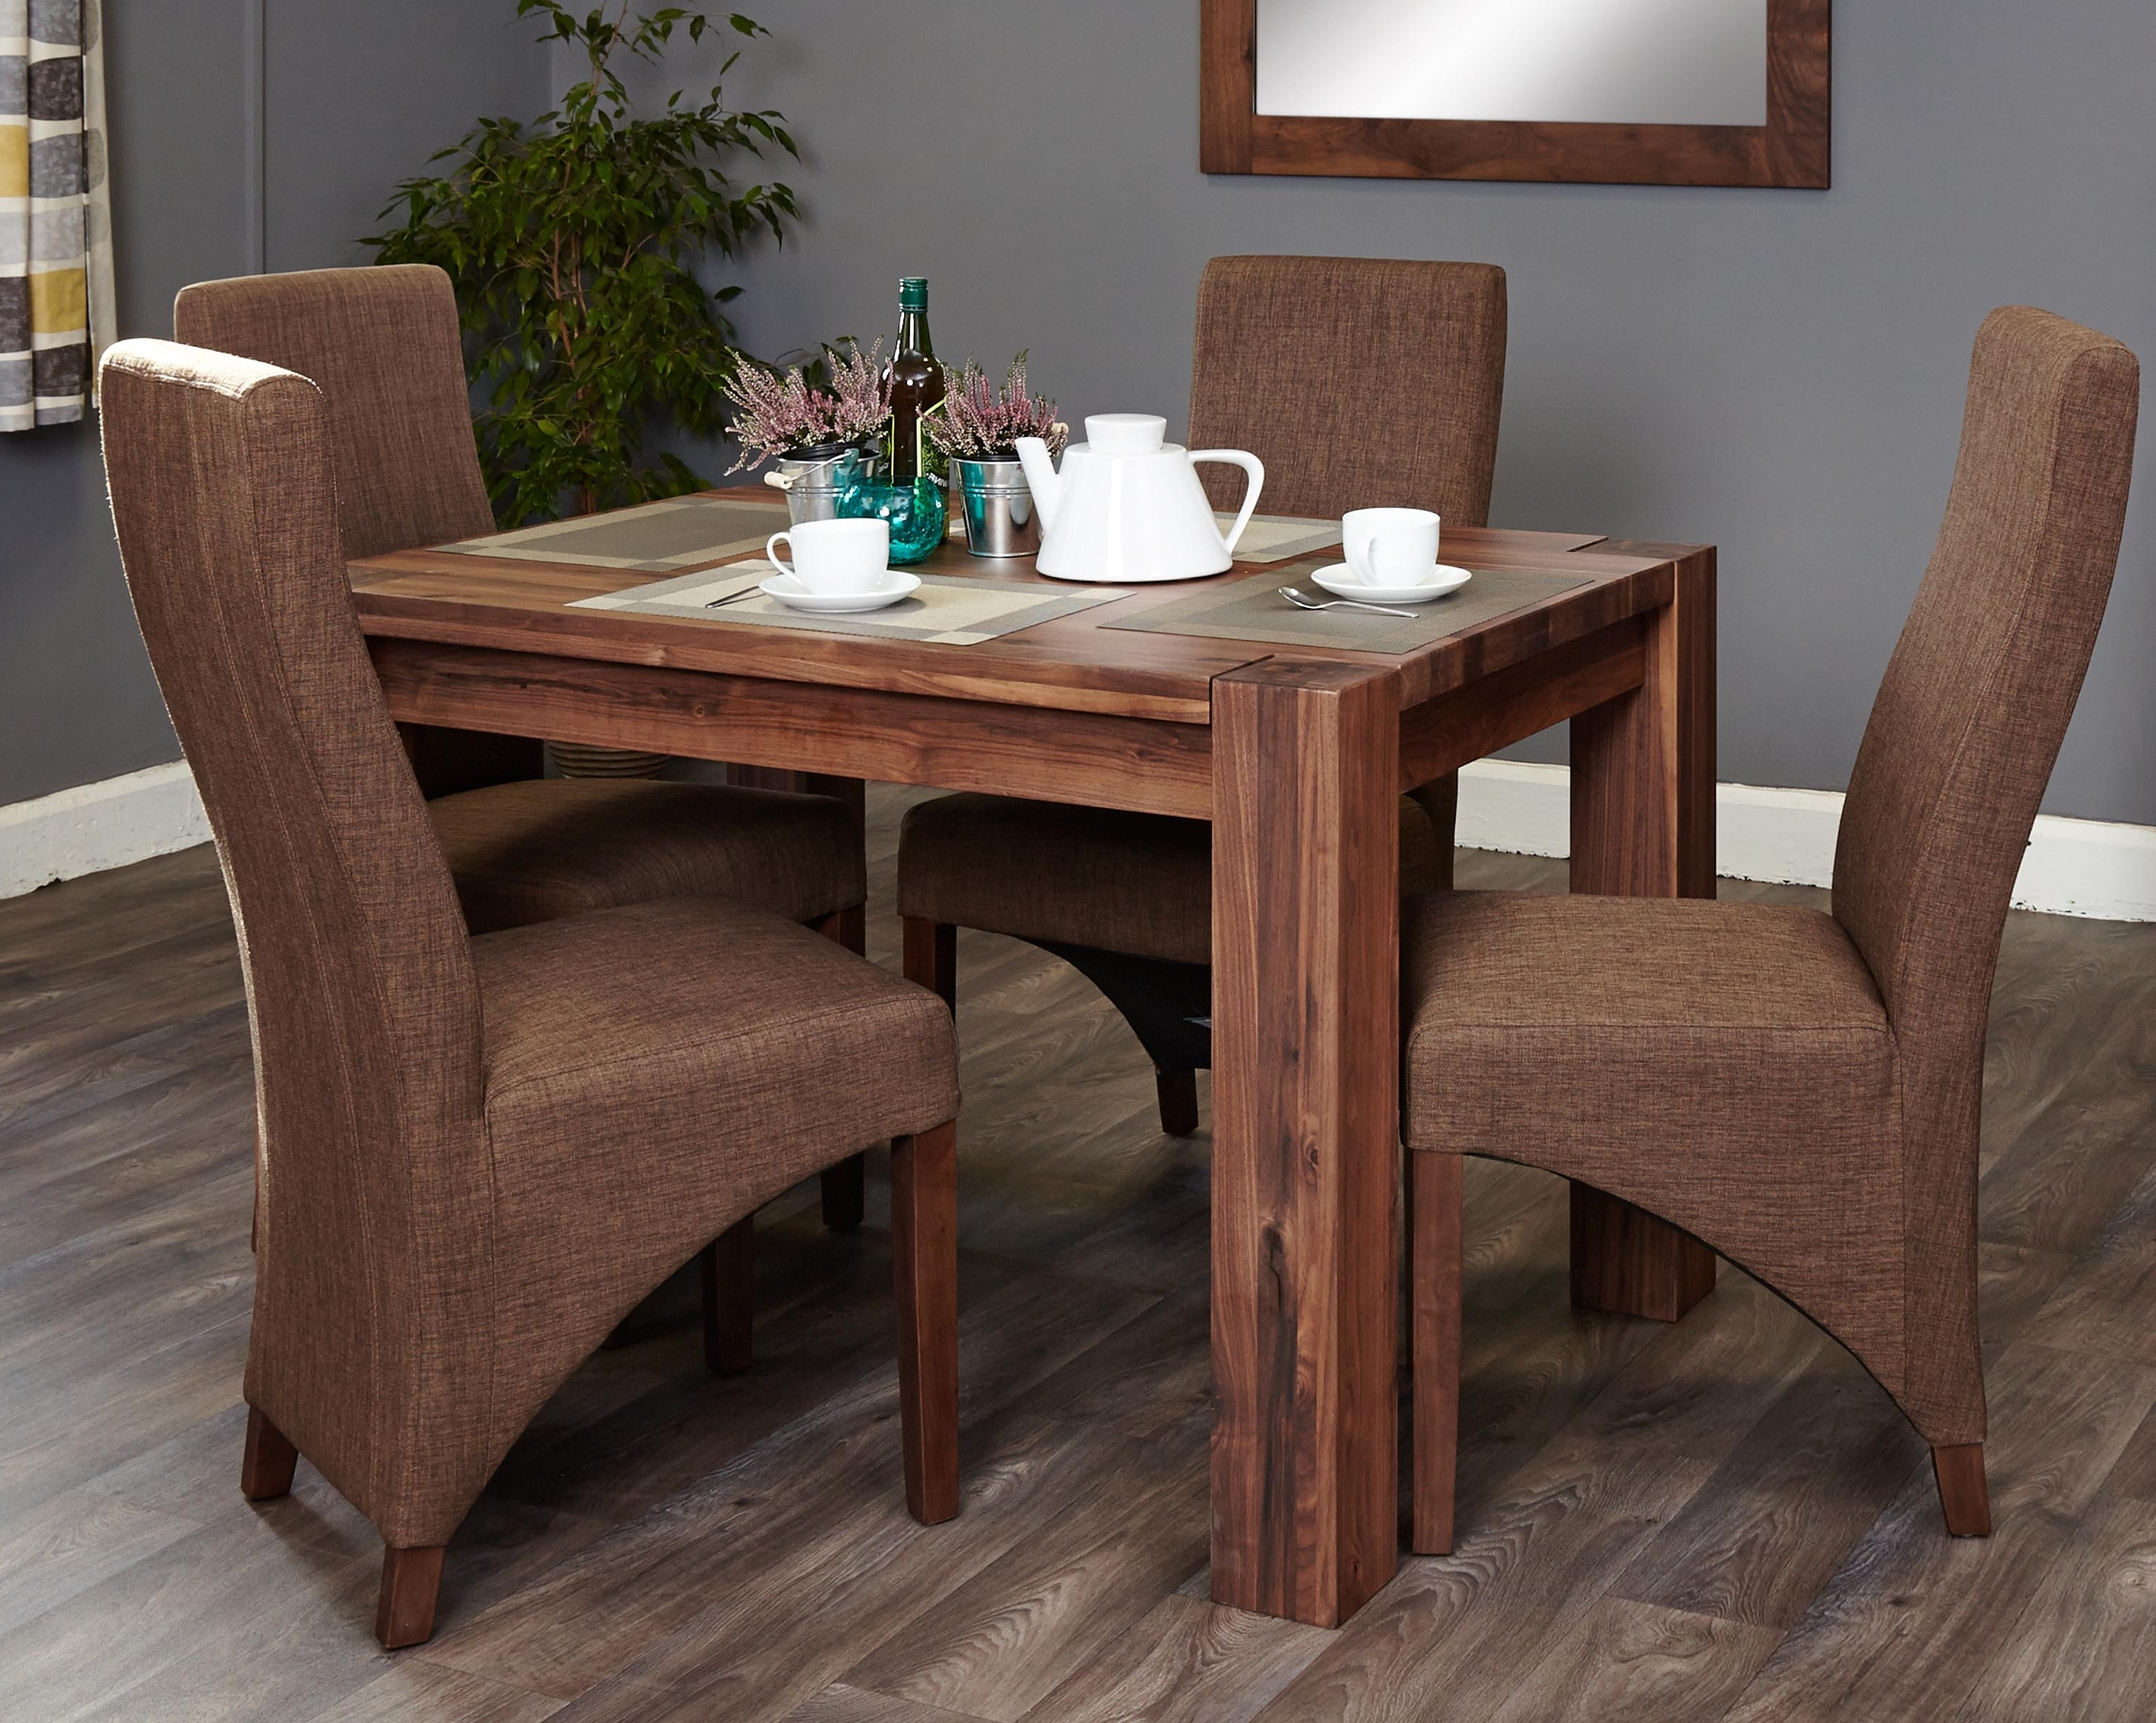 Shiro Walnut 4 Seater Dining Table Set (Full Back) (Socdr04A Cdr03C) Regarding Well Liked Small 4 Seater Dining Tables (View 17 of 25)